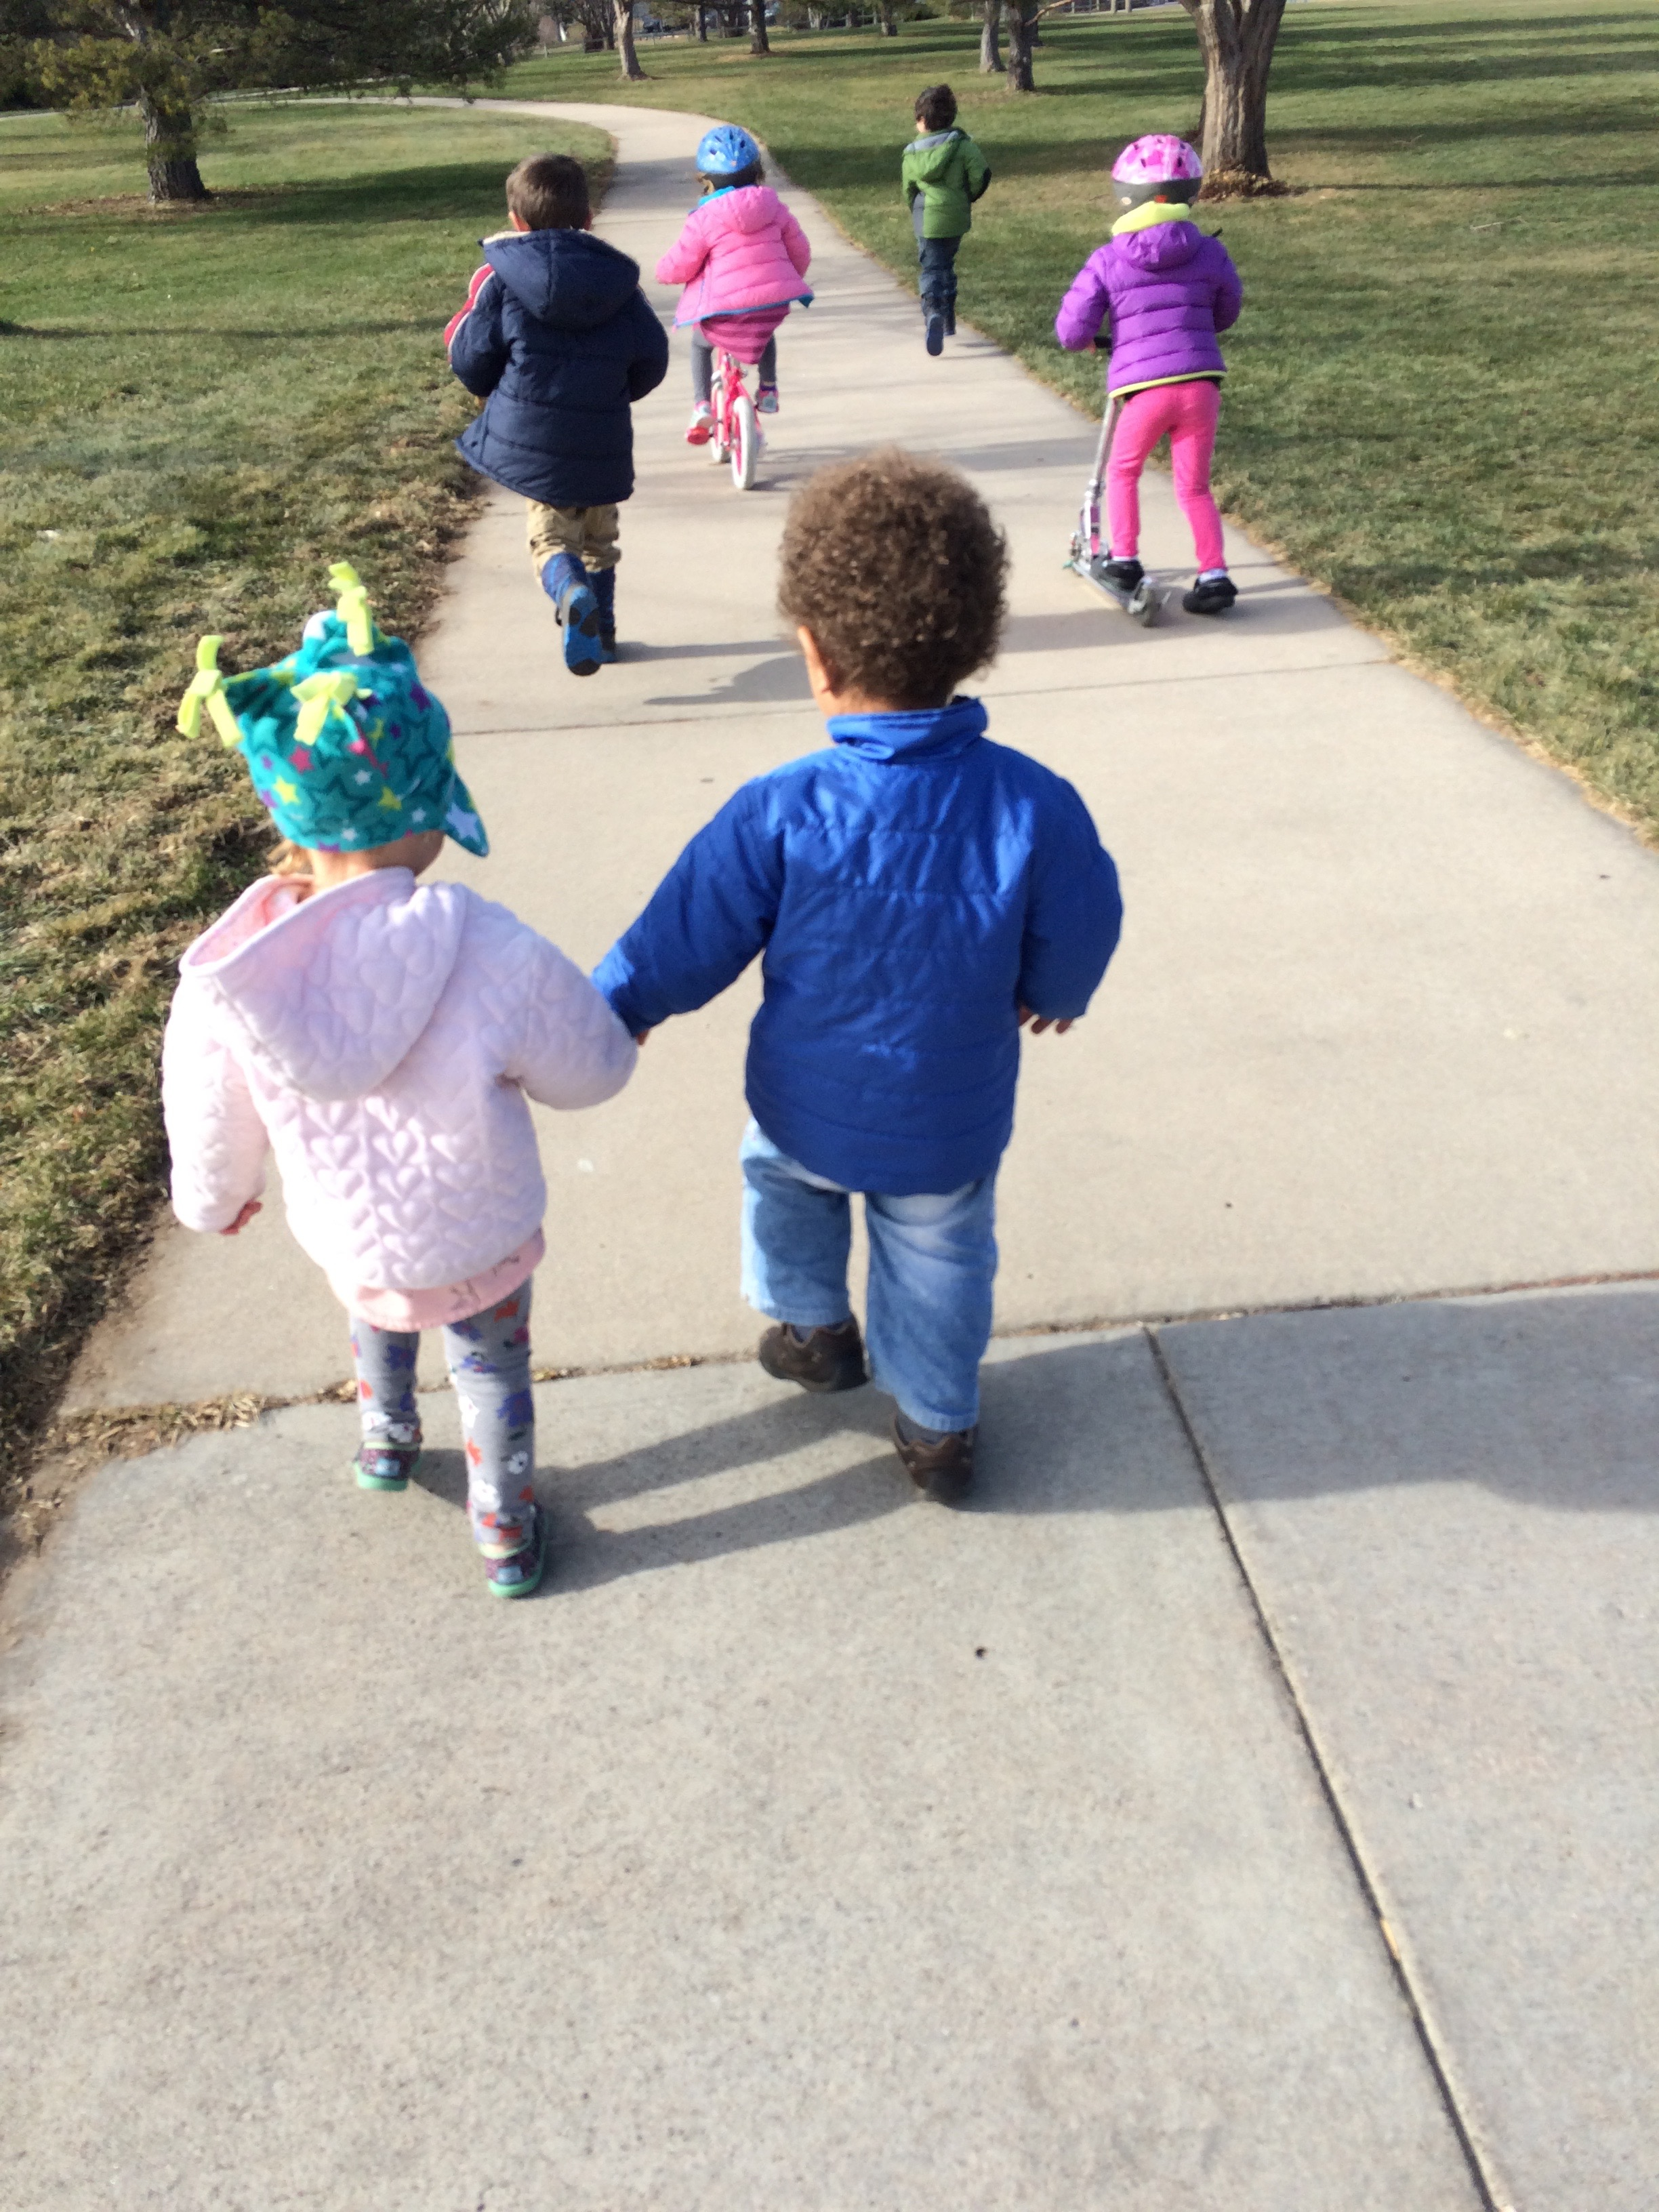 Children walking to playground